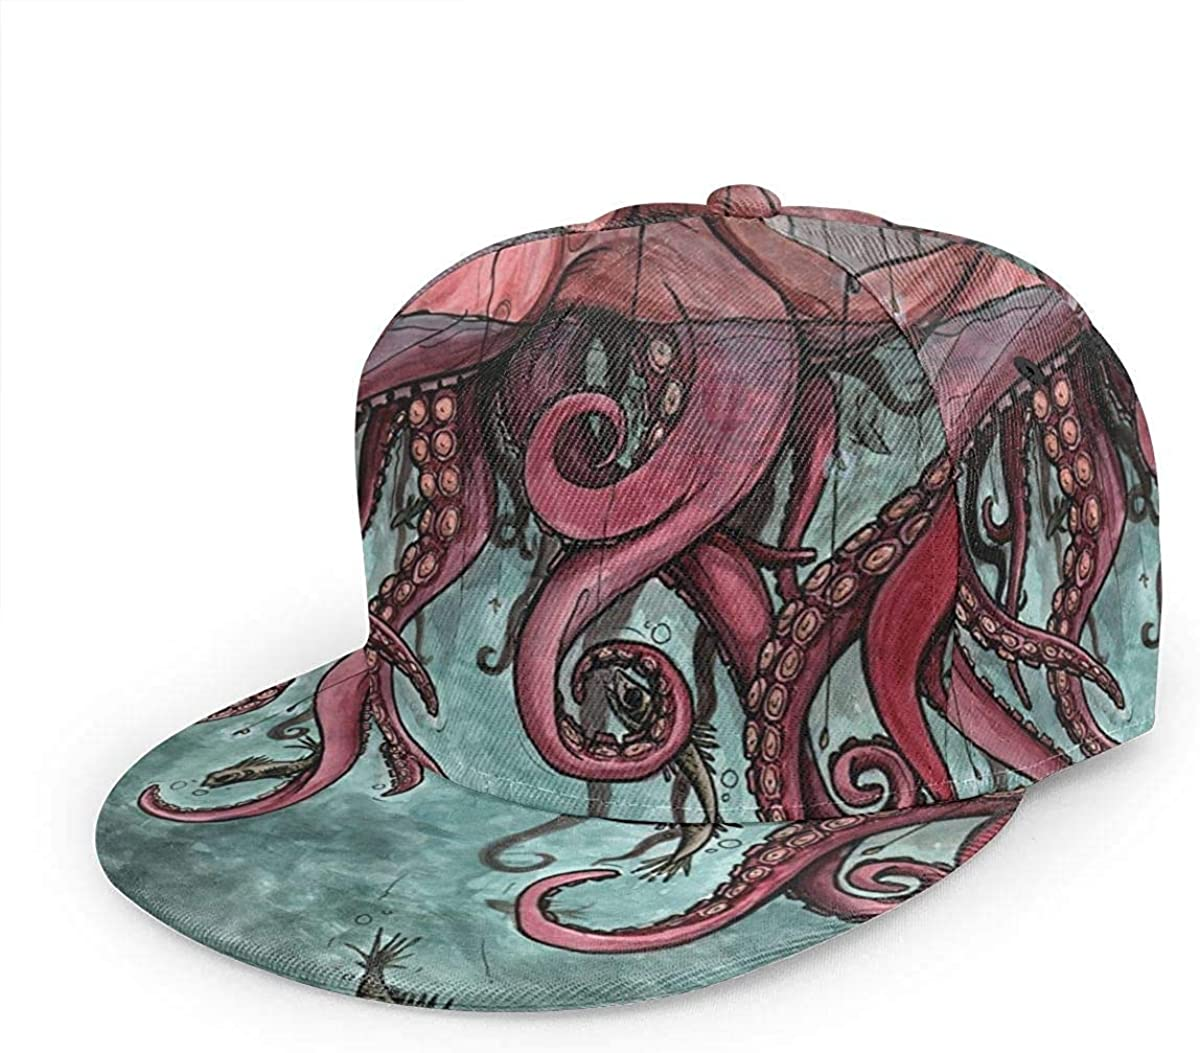 Pink Octopus and Fish Lightweight Unisex Baseball Caps Adjustable Breathable Sun Hat for Sport Outdoor